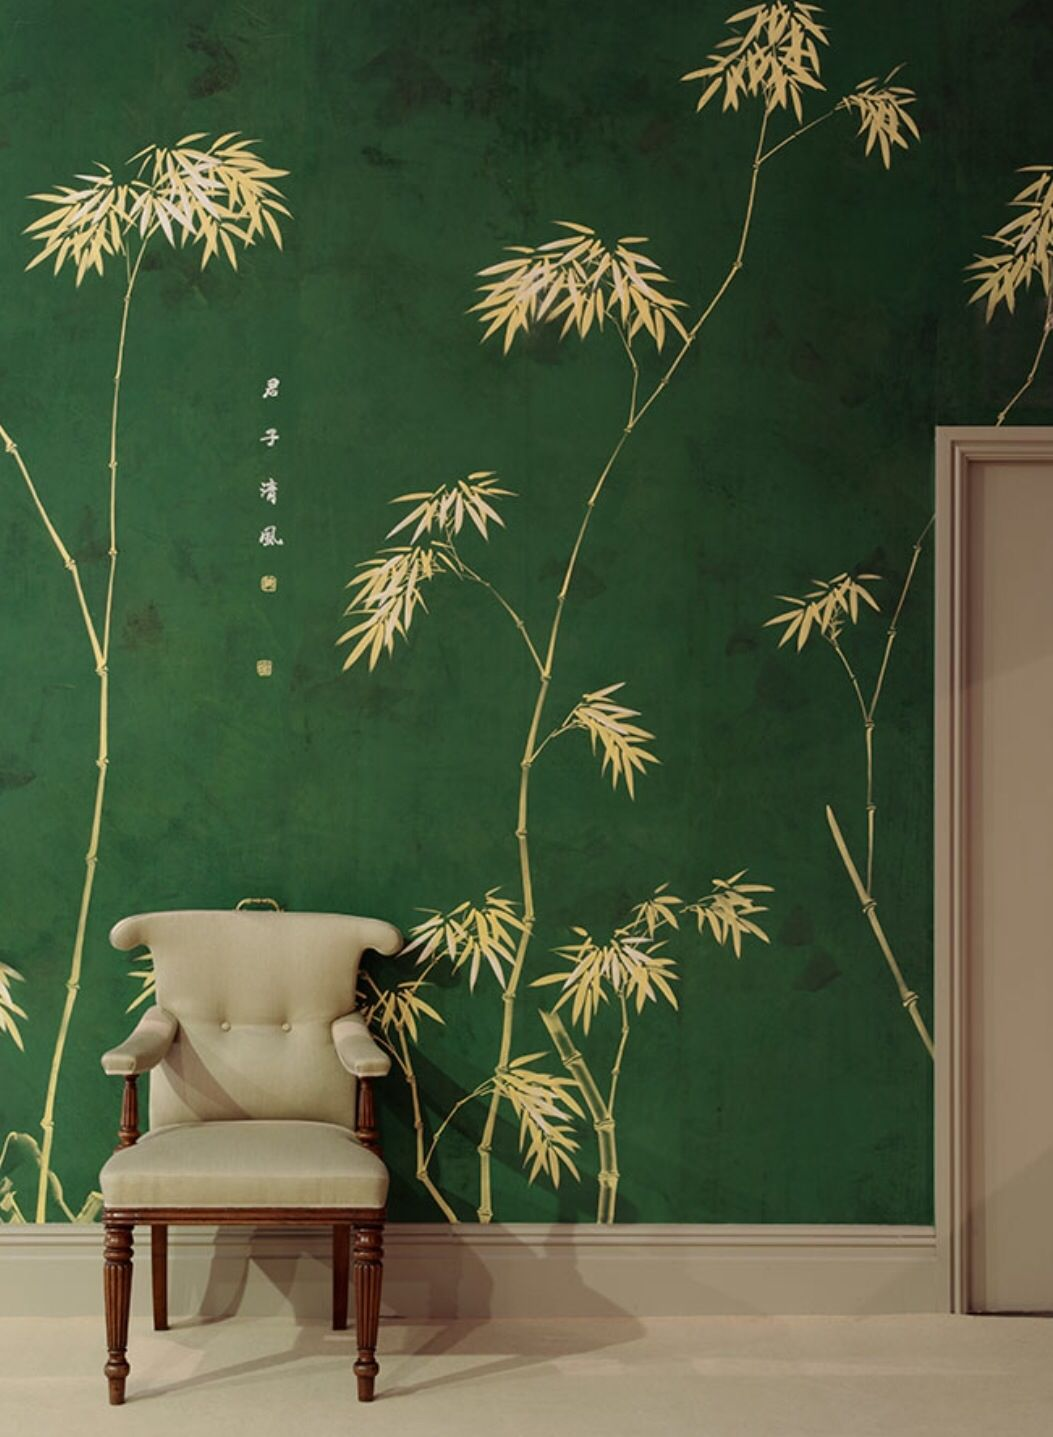 Mural ideas sisustus pinterest wallpaper walls and for Bamboo wallpaper for walls